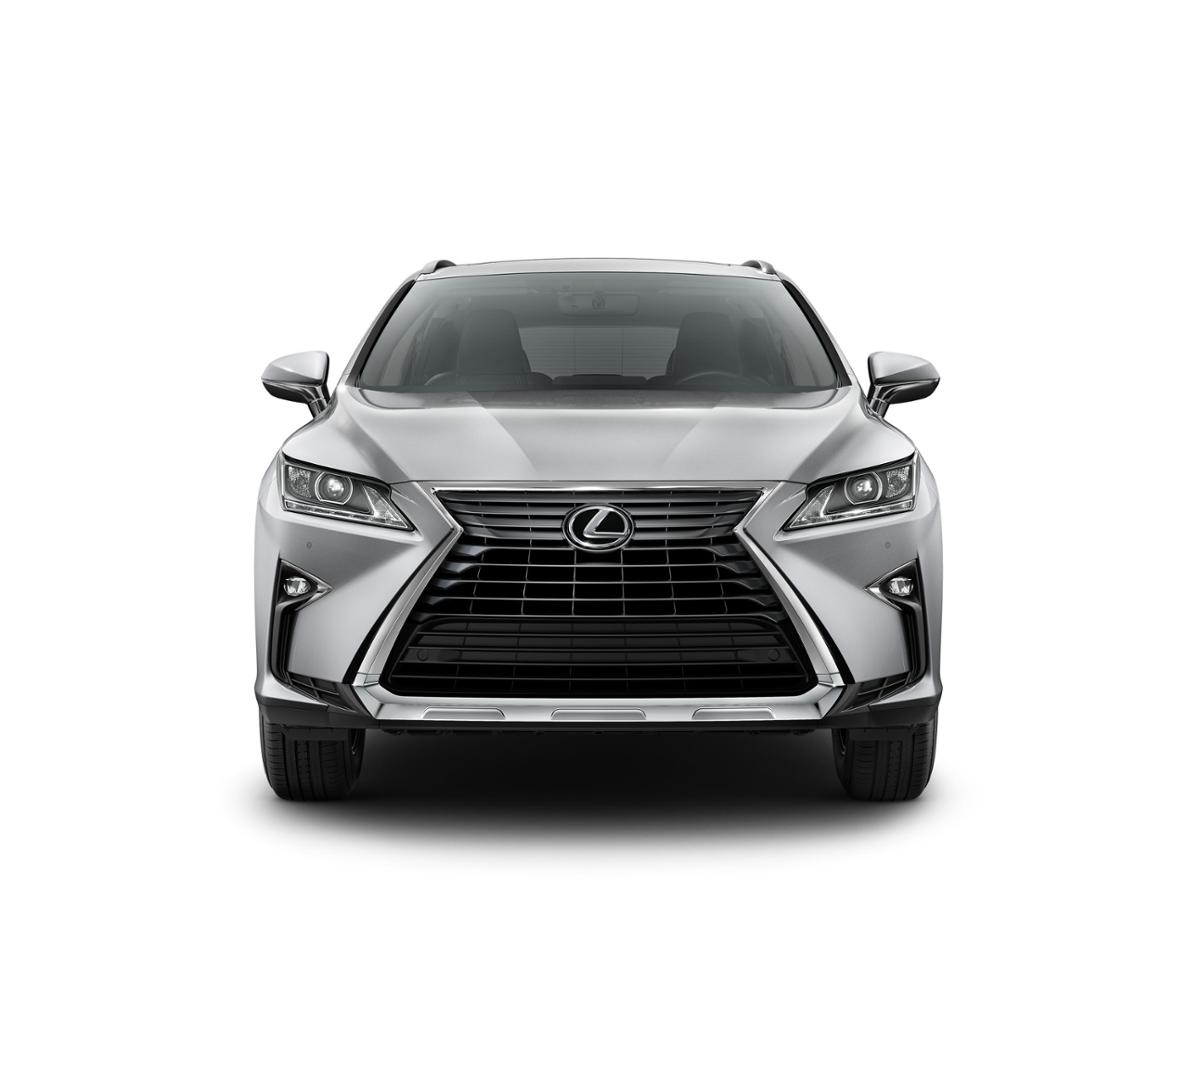 Lexus Rx 350 Lease: New Silver Lining Metallic 2018 Lexus RX 350 For Sale